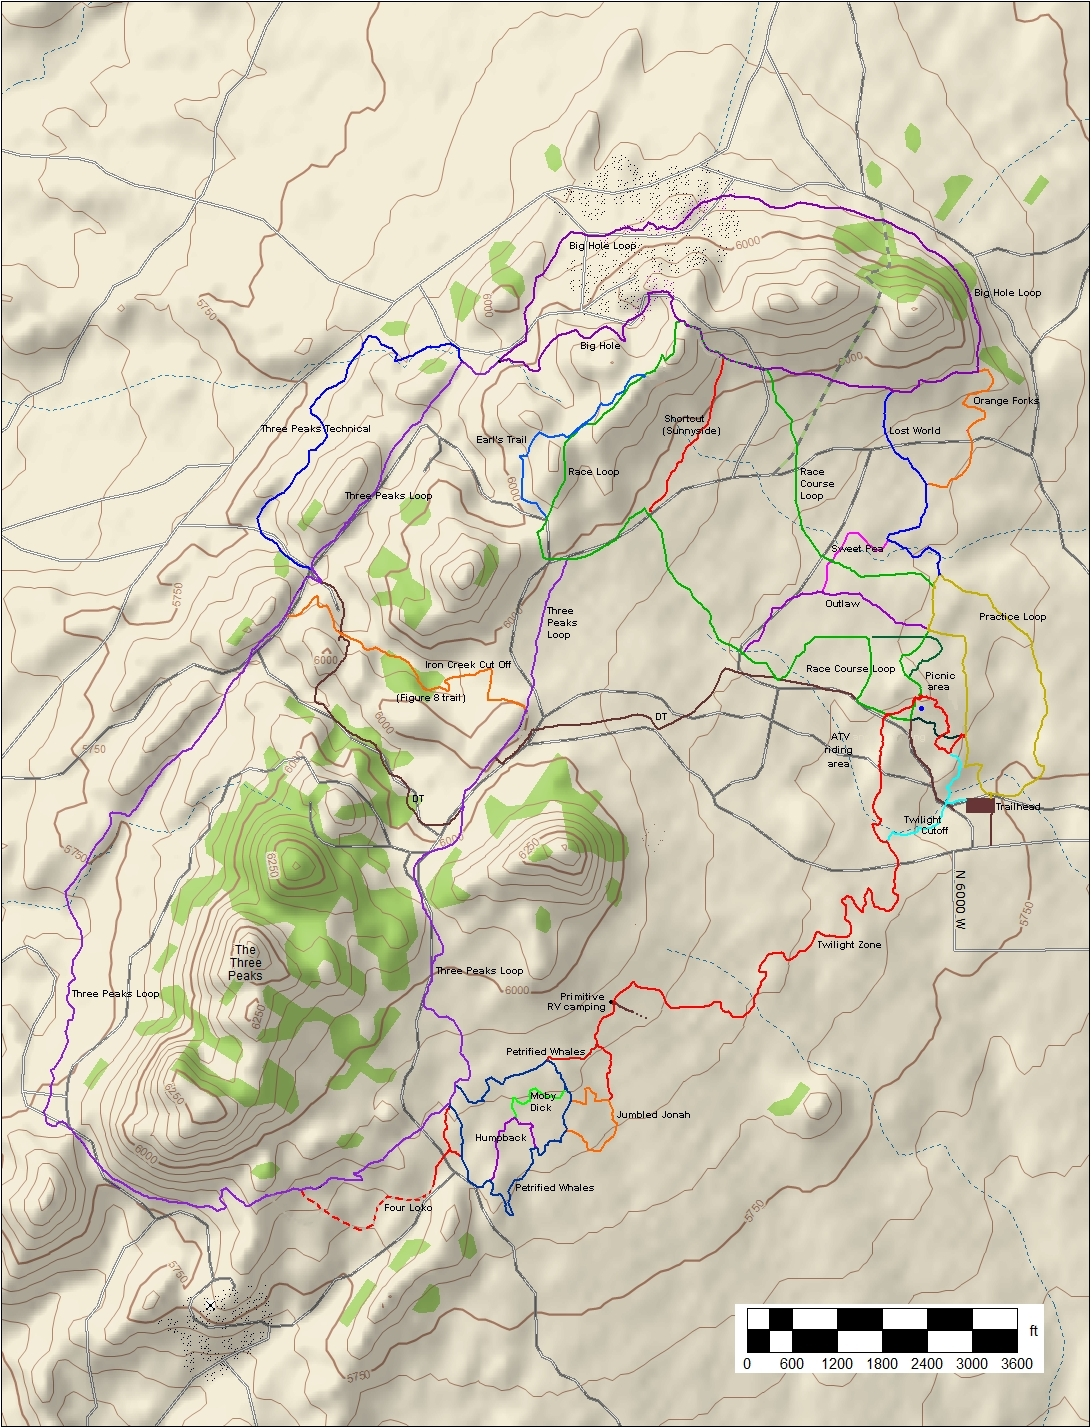 Three Peaks Trail System